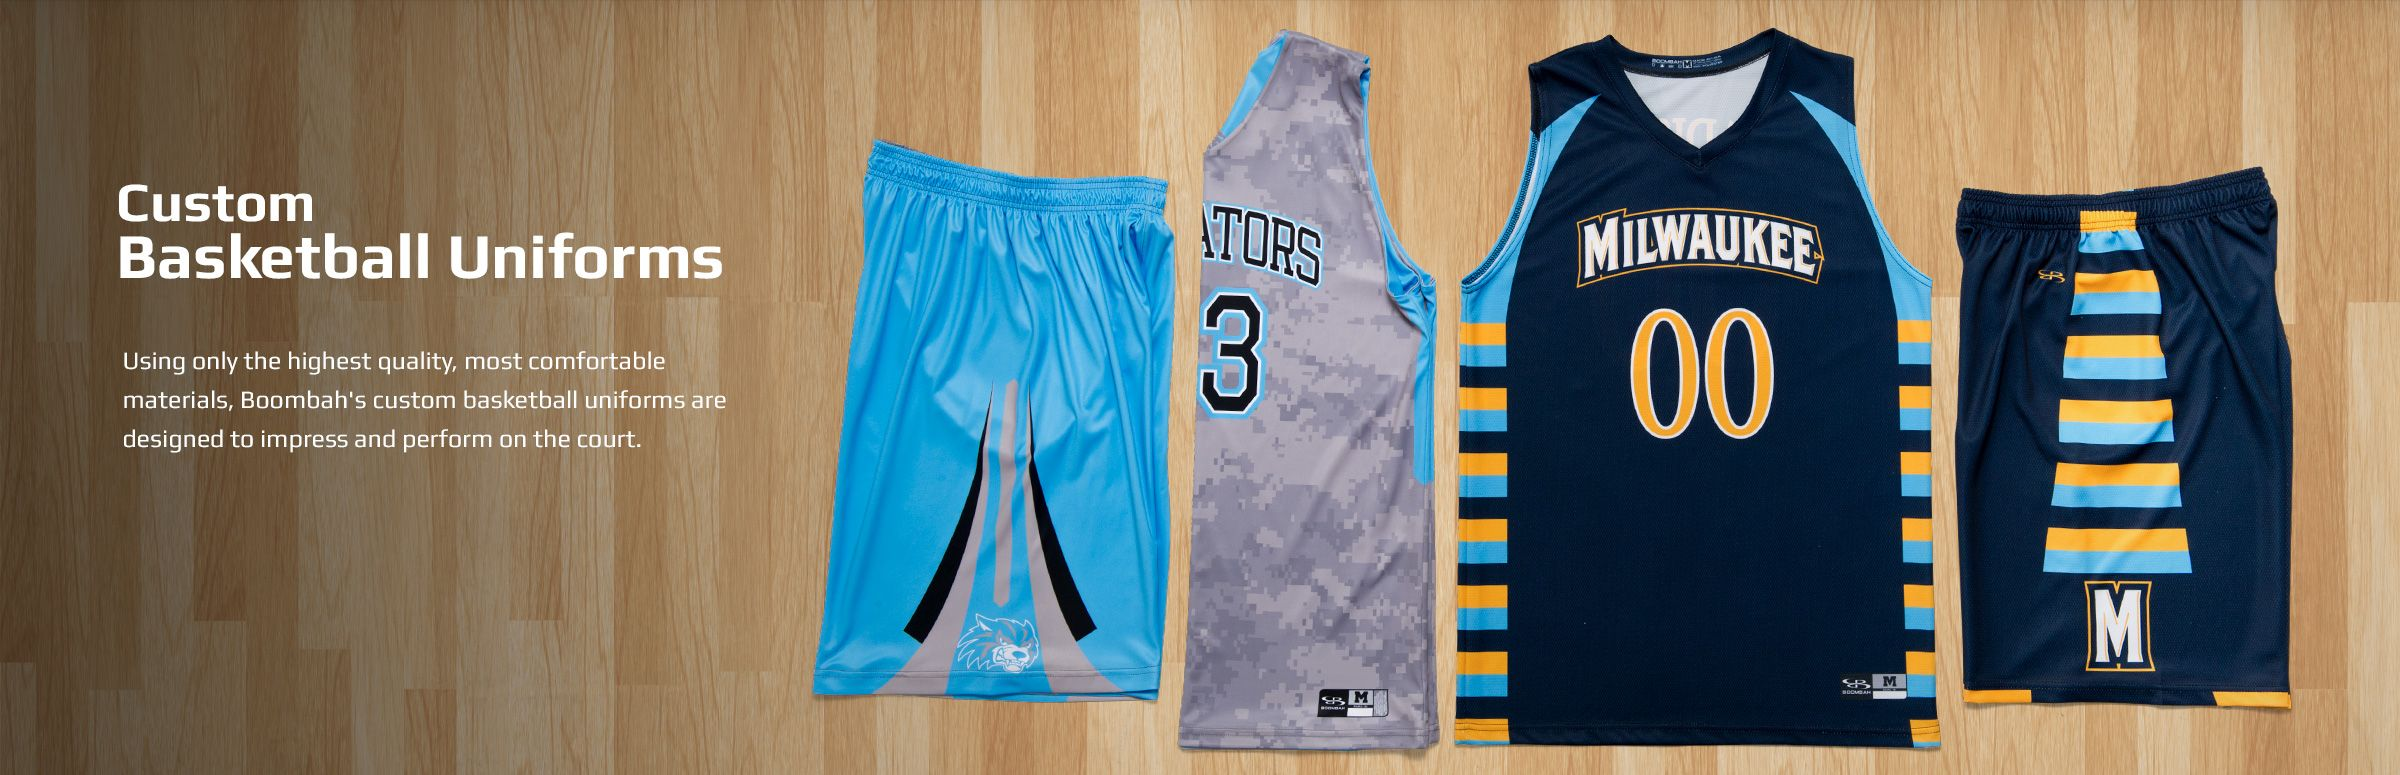 Boombah Men's Basketball Uniforms